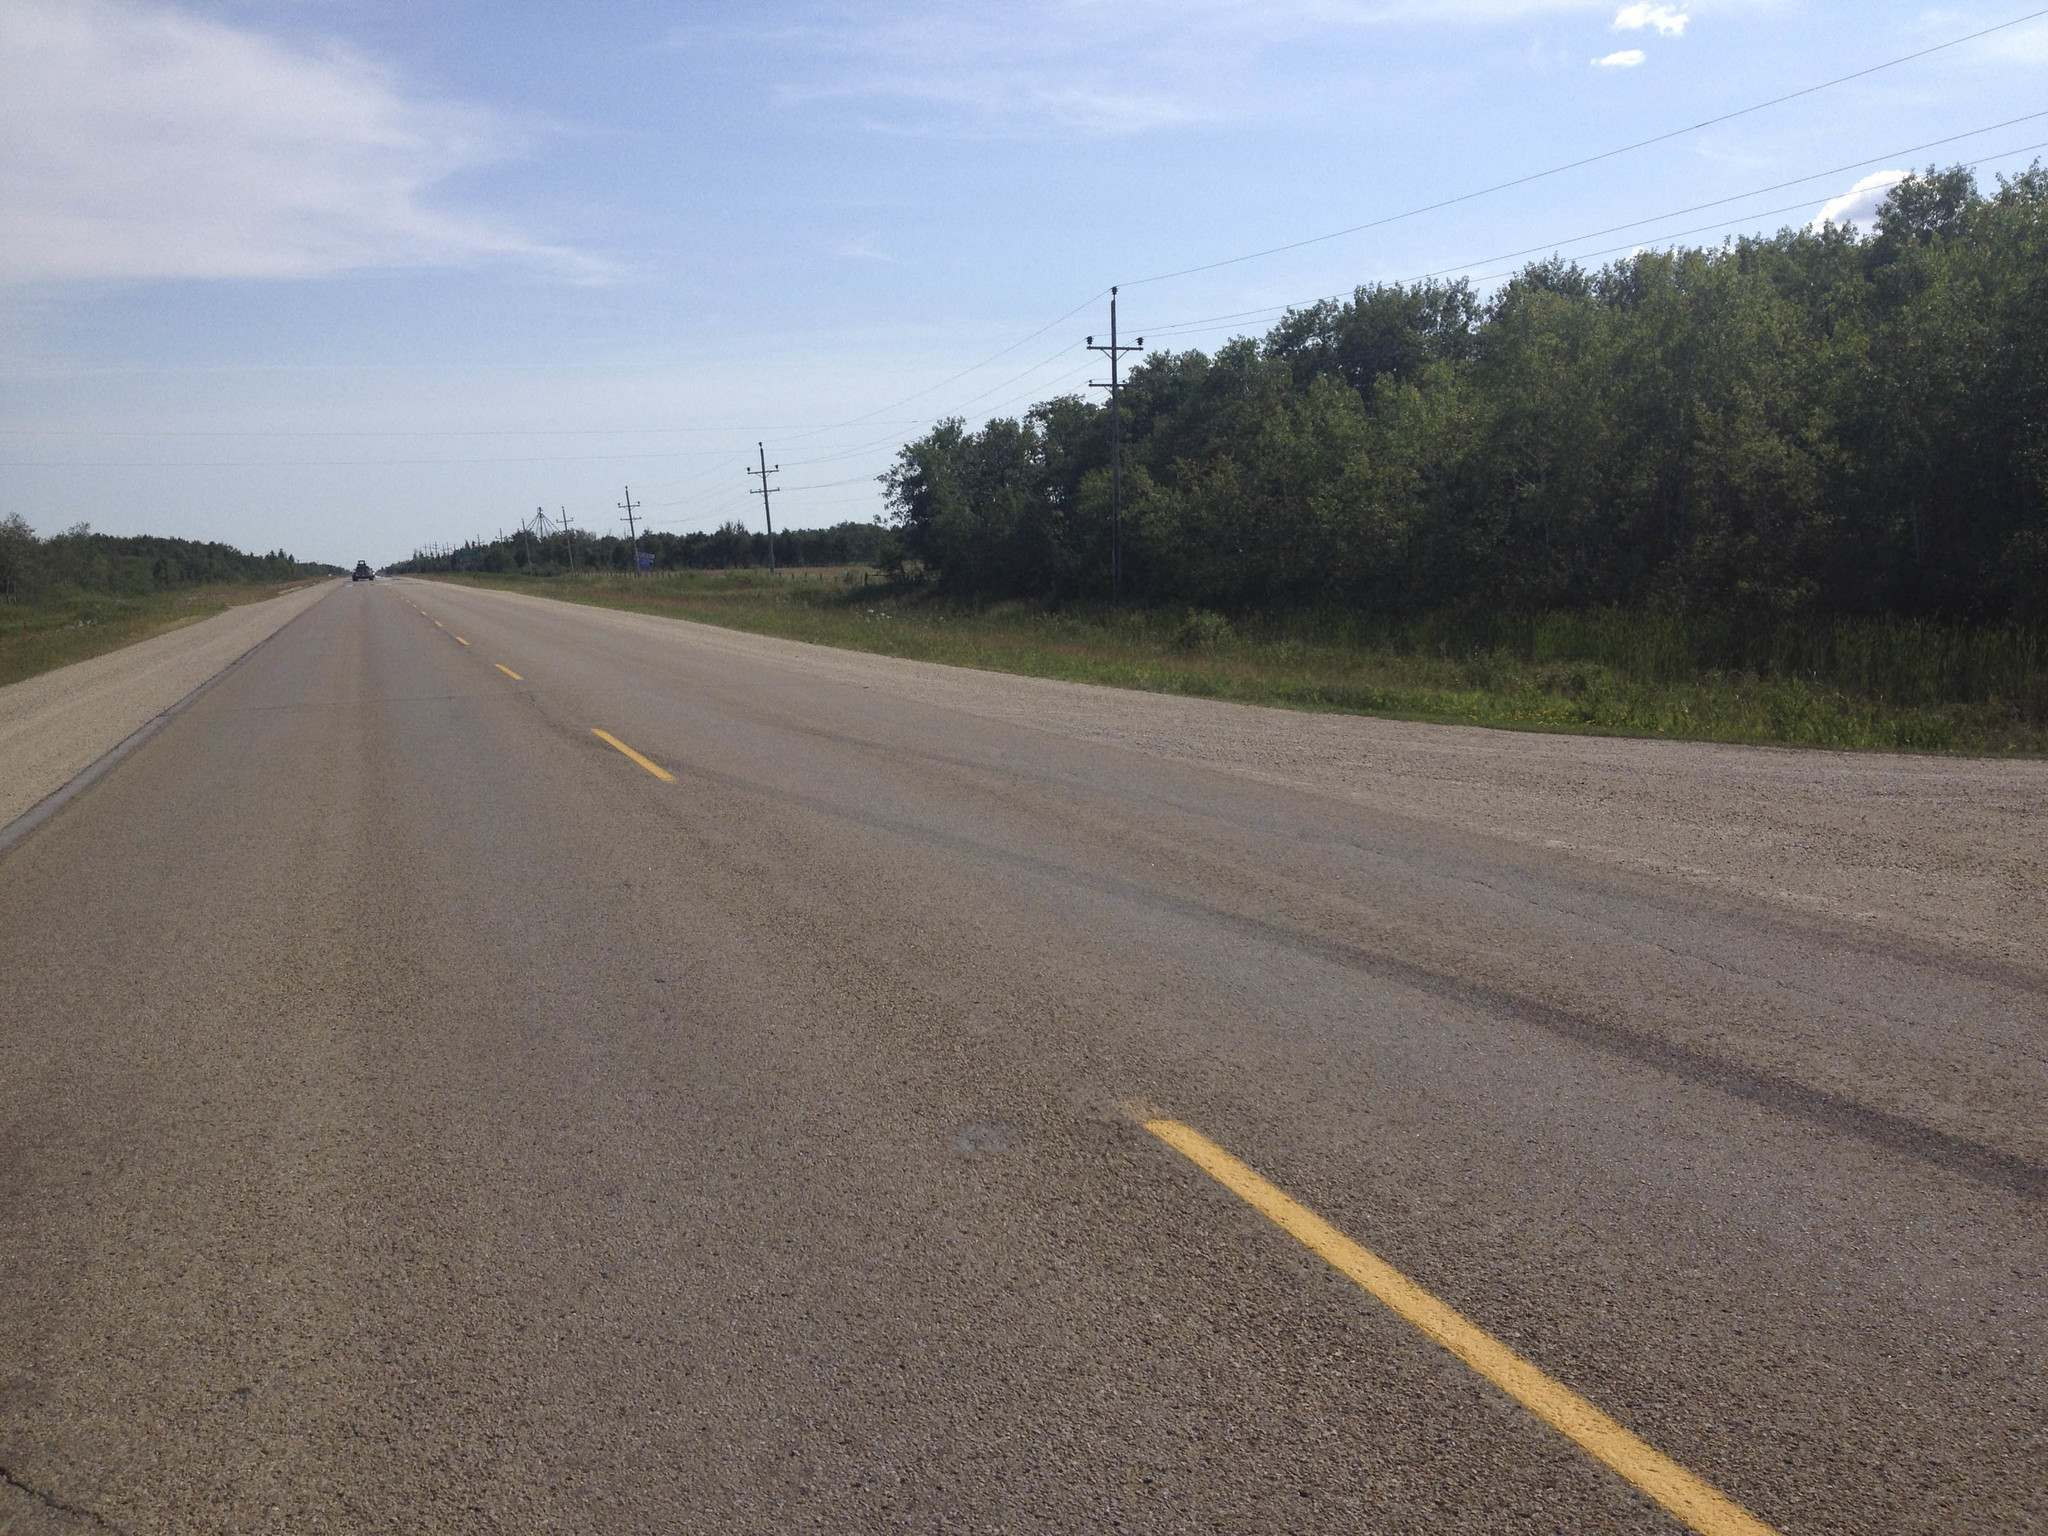 SUPPLIED</p><p>Birdeen Malchuk shot a series of photos of the road the day after a motorist buzzed them around 1:20 a.m. Aug. 5 on Highway 7 north of Teulon. Skid marks can be seen crossing the lanes.</p>